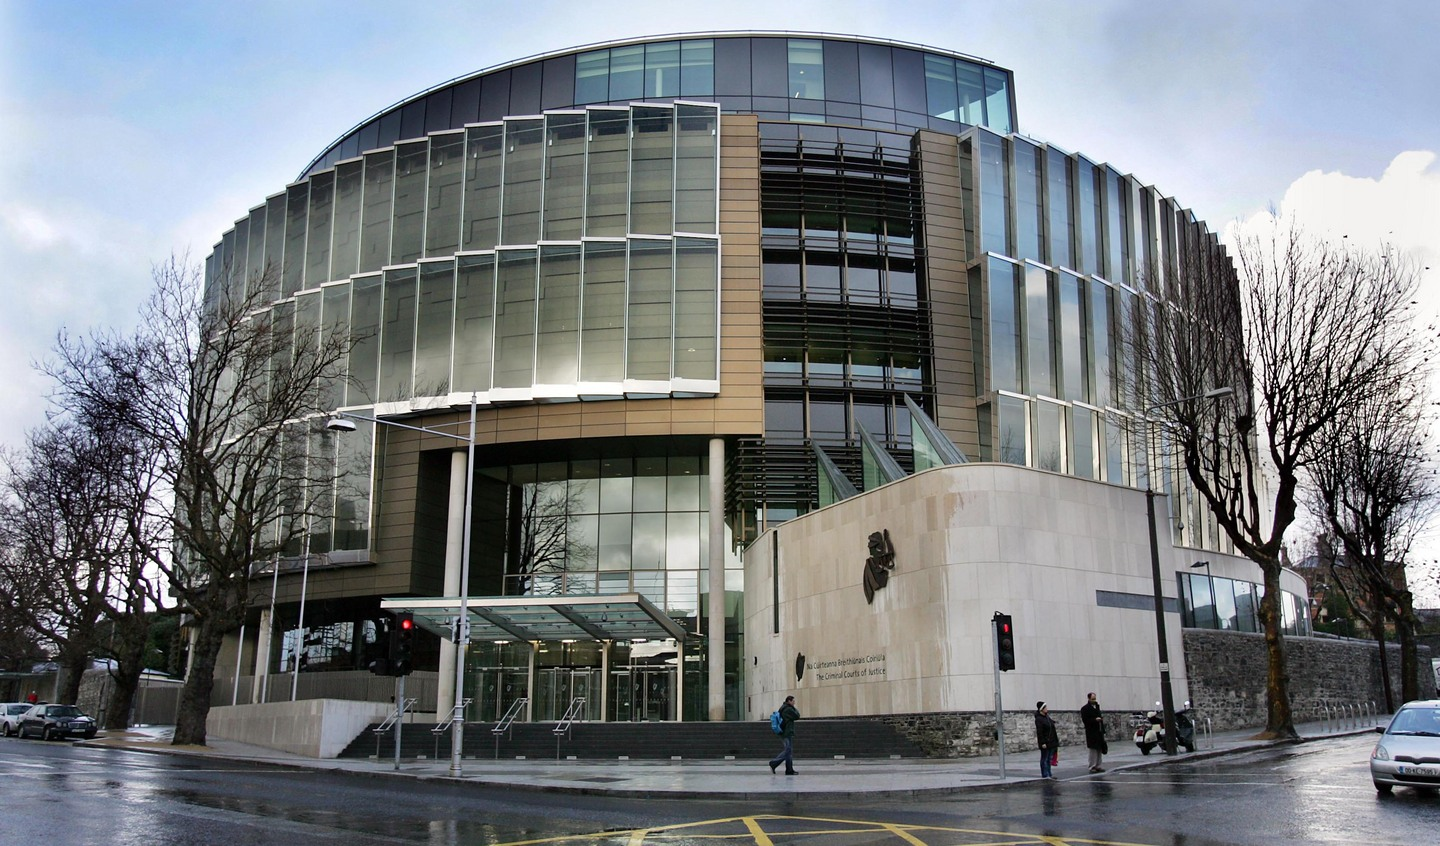 Garda sent sergeant emails and Facebook request despite many warnings